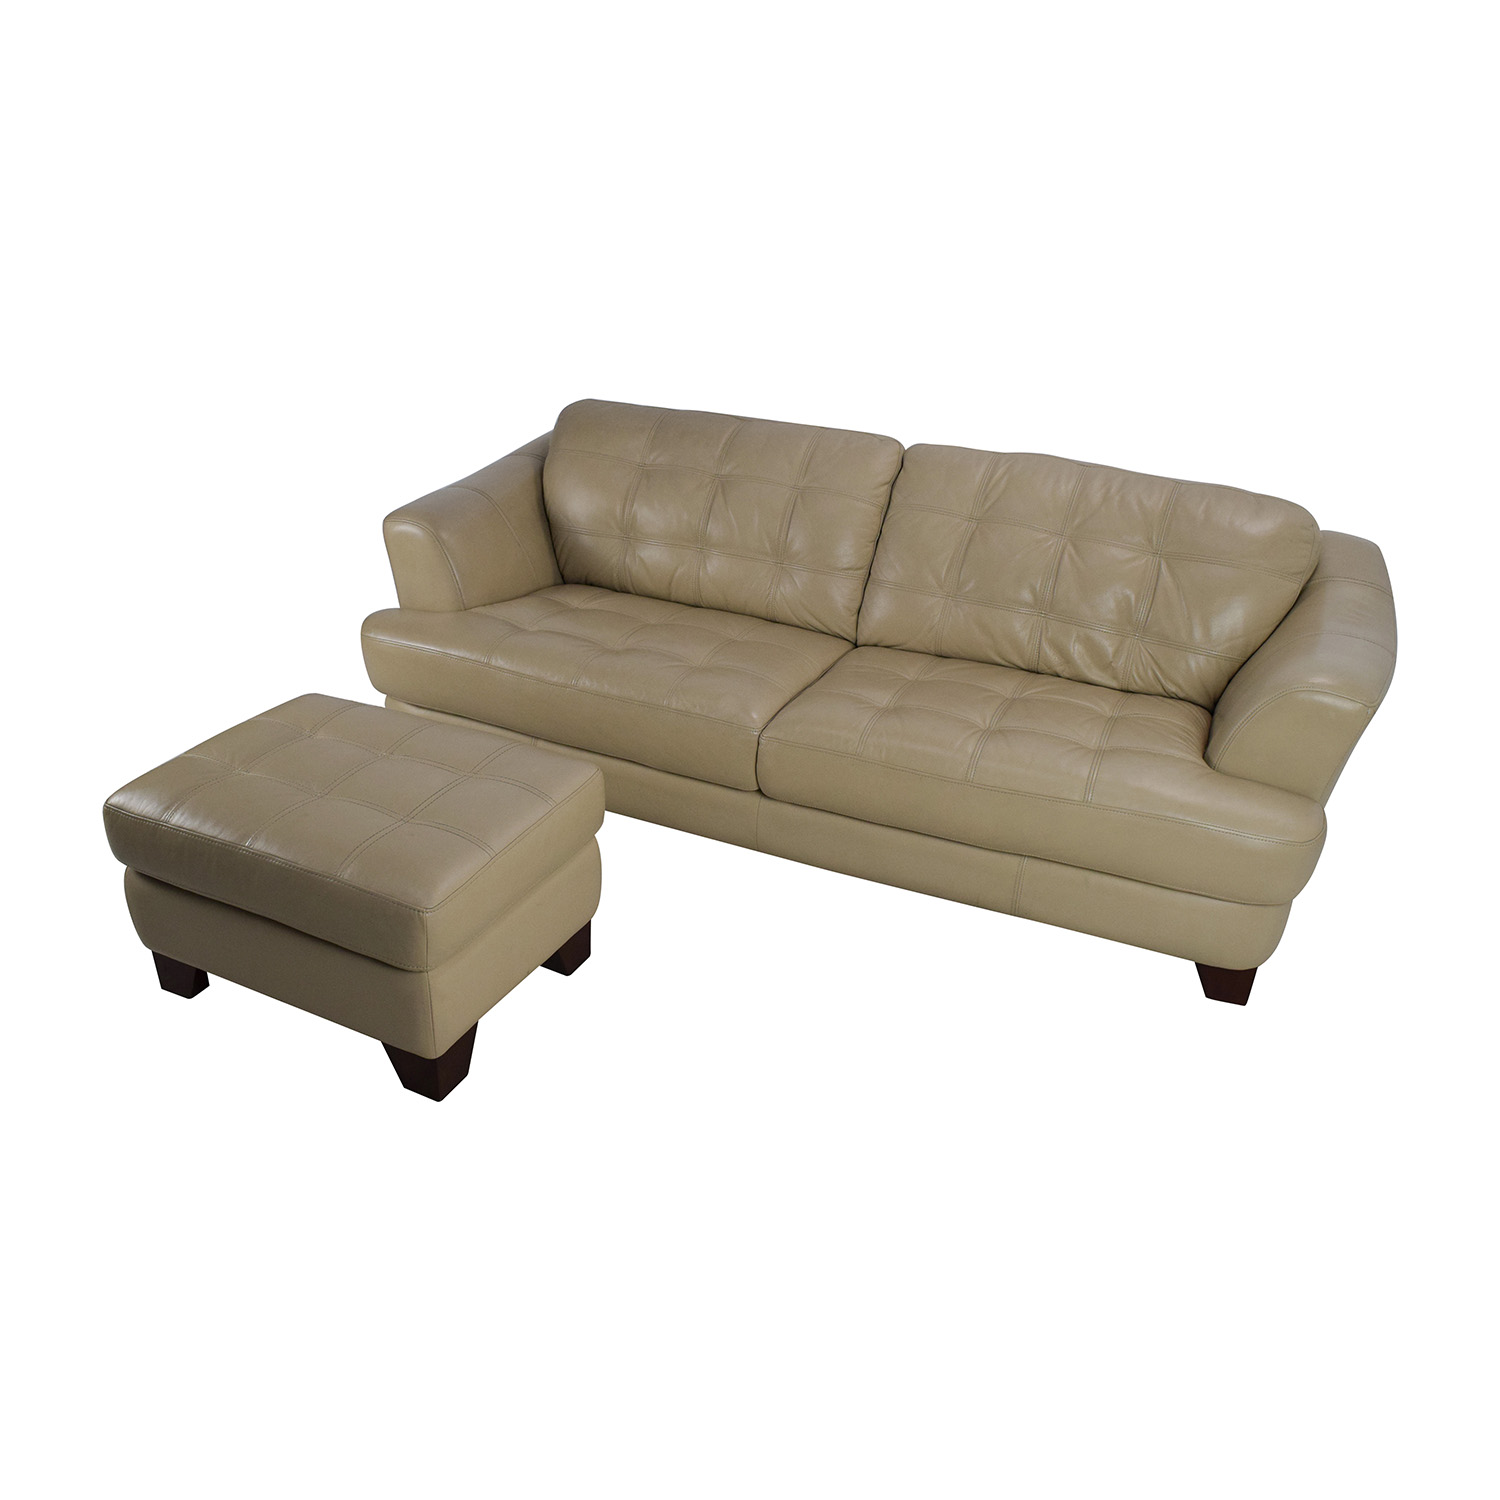 65% OFF Bob s Furniture Bob s Furniture Leather Couch with